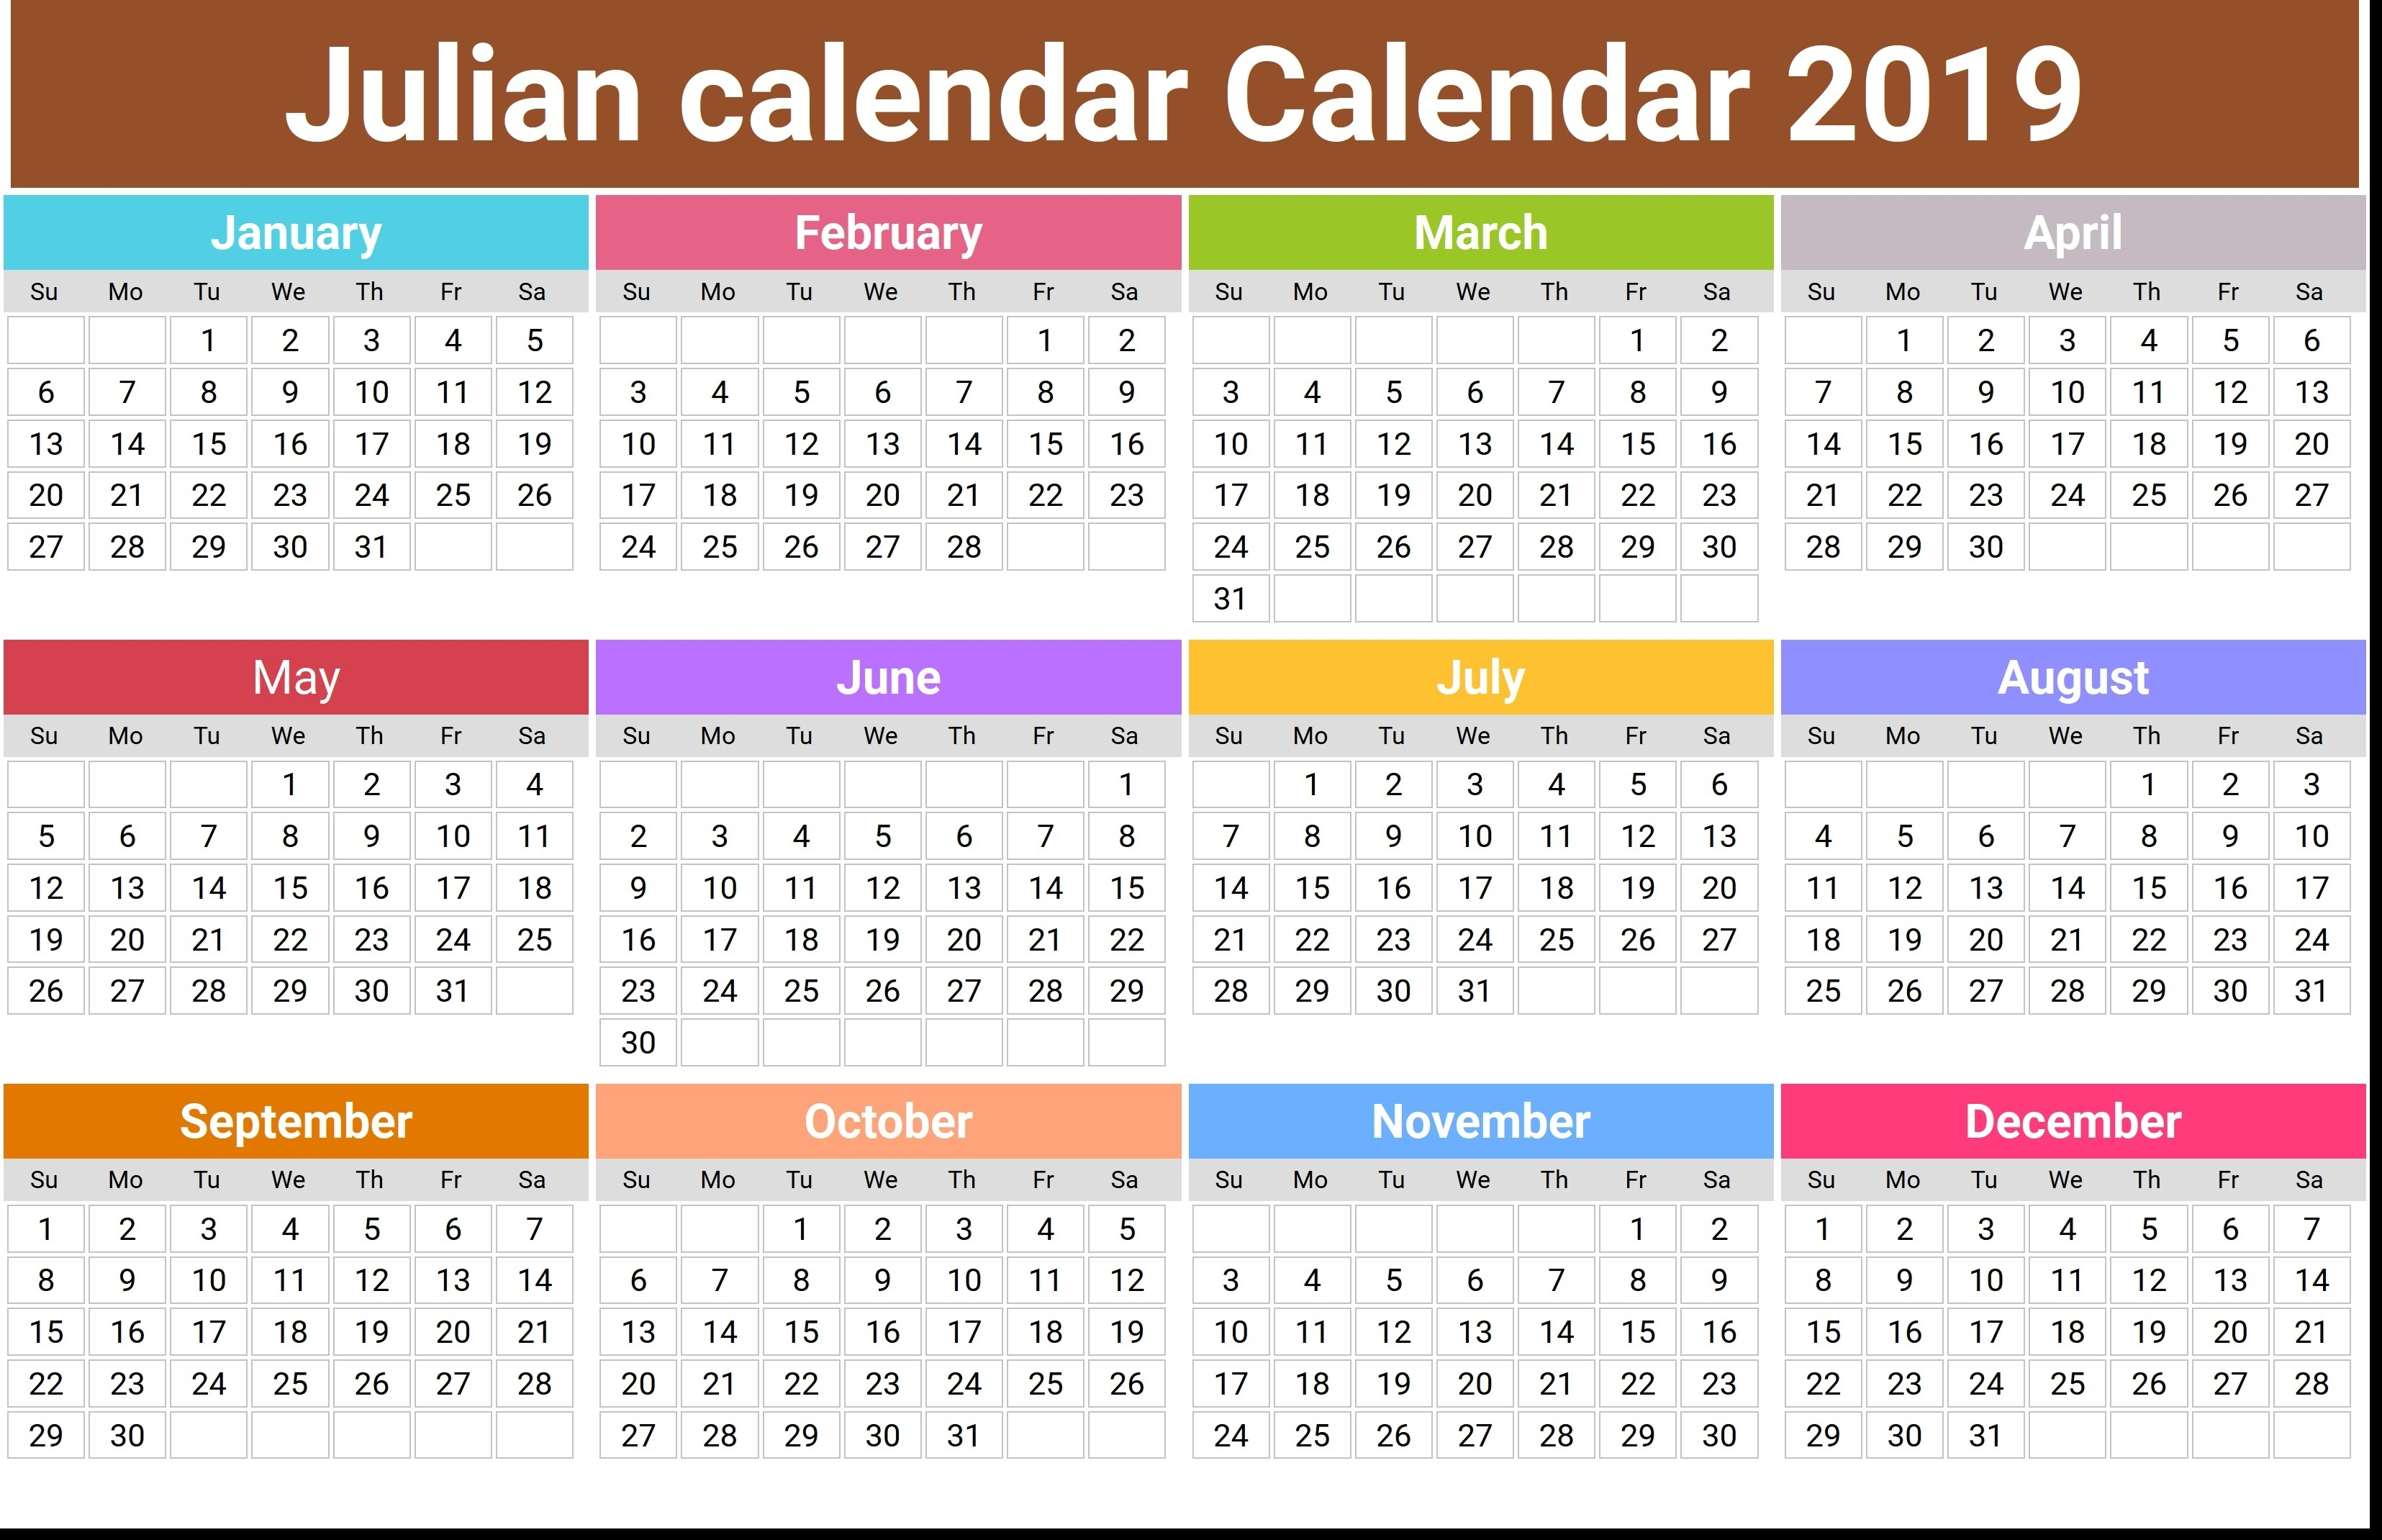 Julian Calendar 2020 2020 Template | Example Calendar Printable inside Julian Calendar Quadax 2020